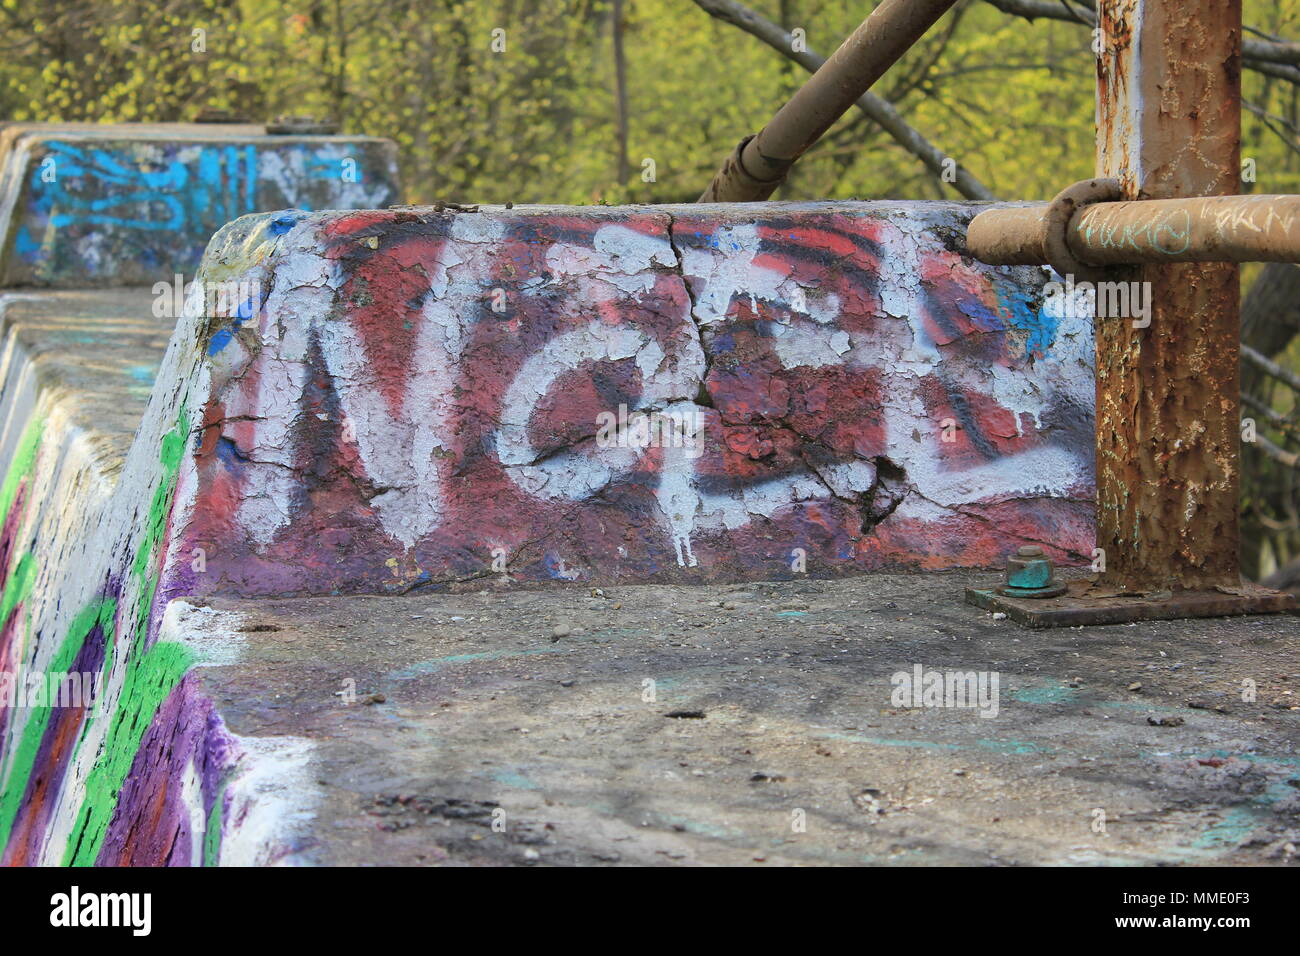 Graffiti spray-painted on The Graffiti Bridge at La Bragh woods in an inner city area of Chicago, Illinois. - Stock Image